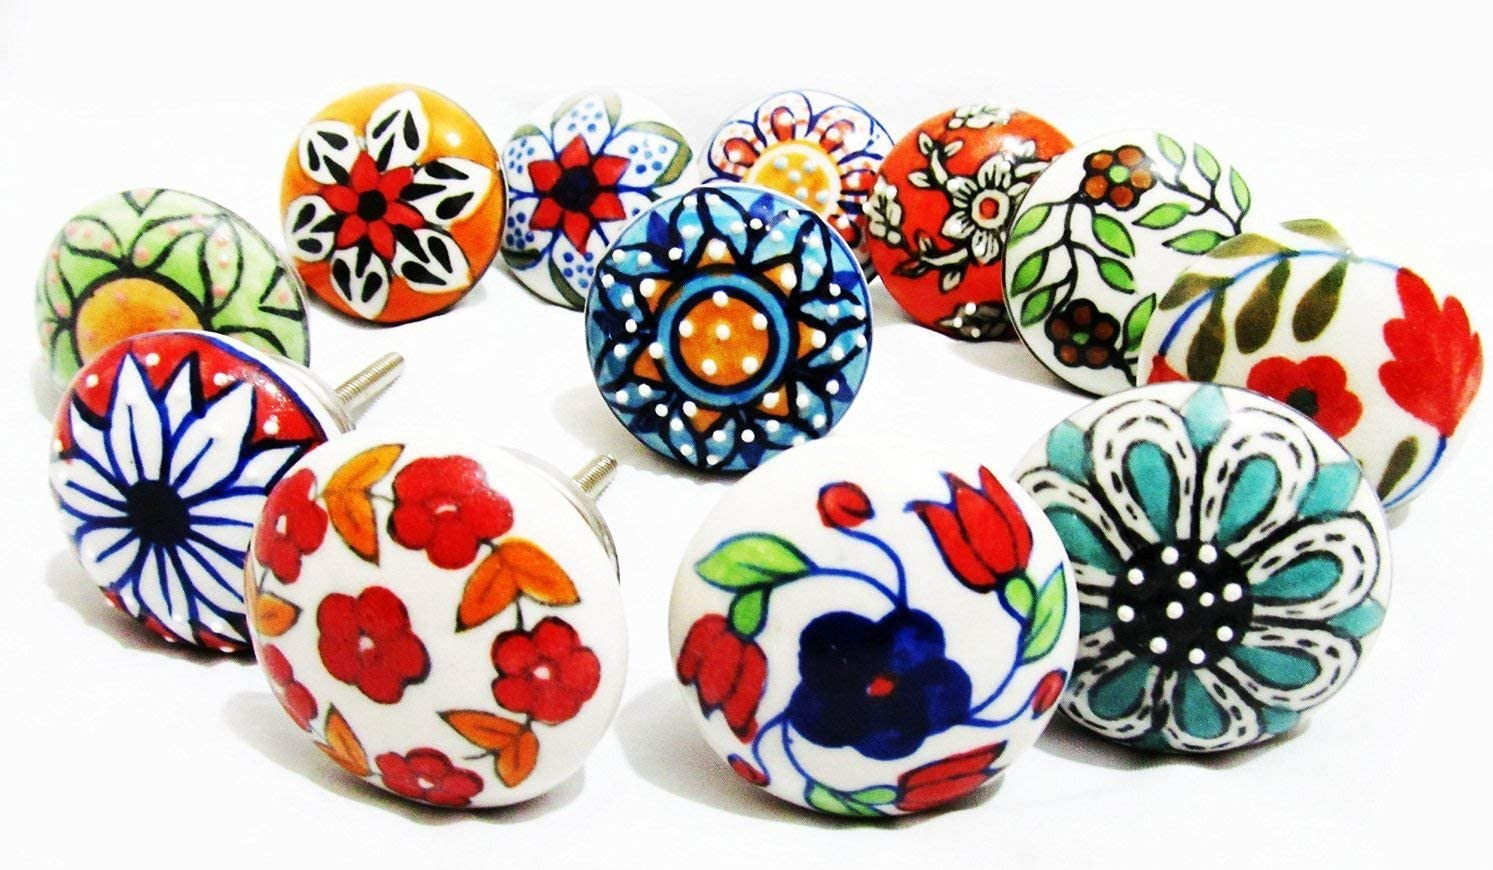 Artncraft 12 Pieces Set Dotted Ceramic Cabinet Colorful Knobs Furniture Handle Drawer Pulls (Design 2)